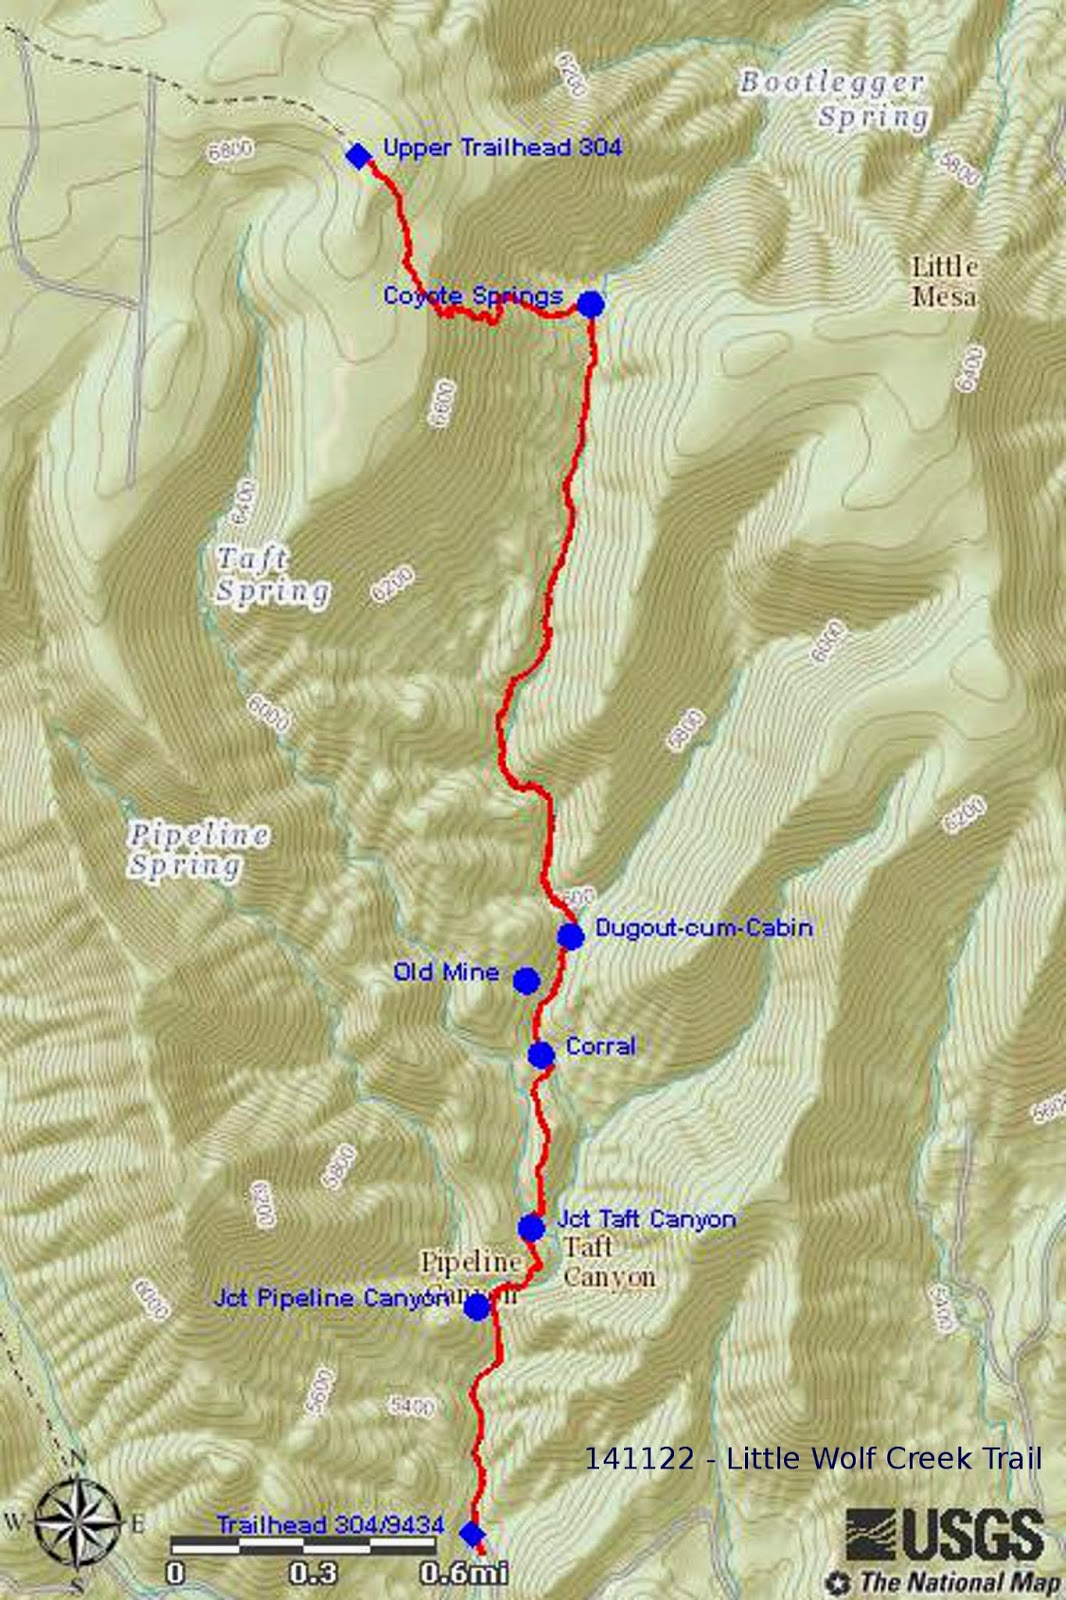 note that both pipeline canyon and taft canyon feed in from the northwest also note that taft canyon runs parallel to little wolf creek canyon for a